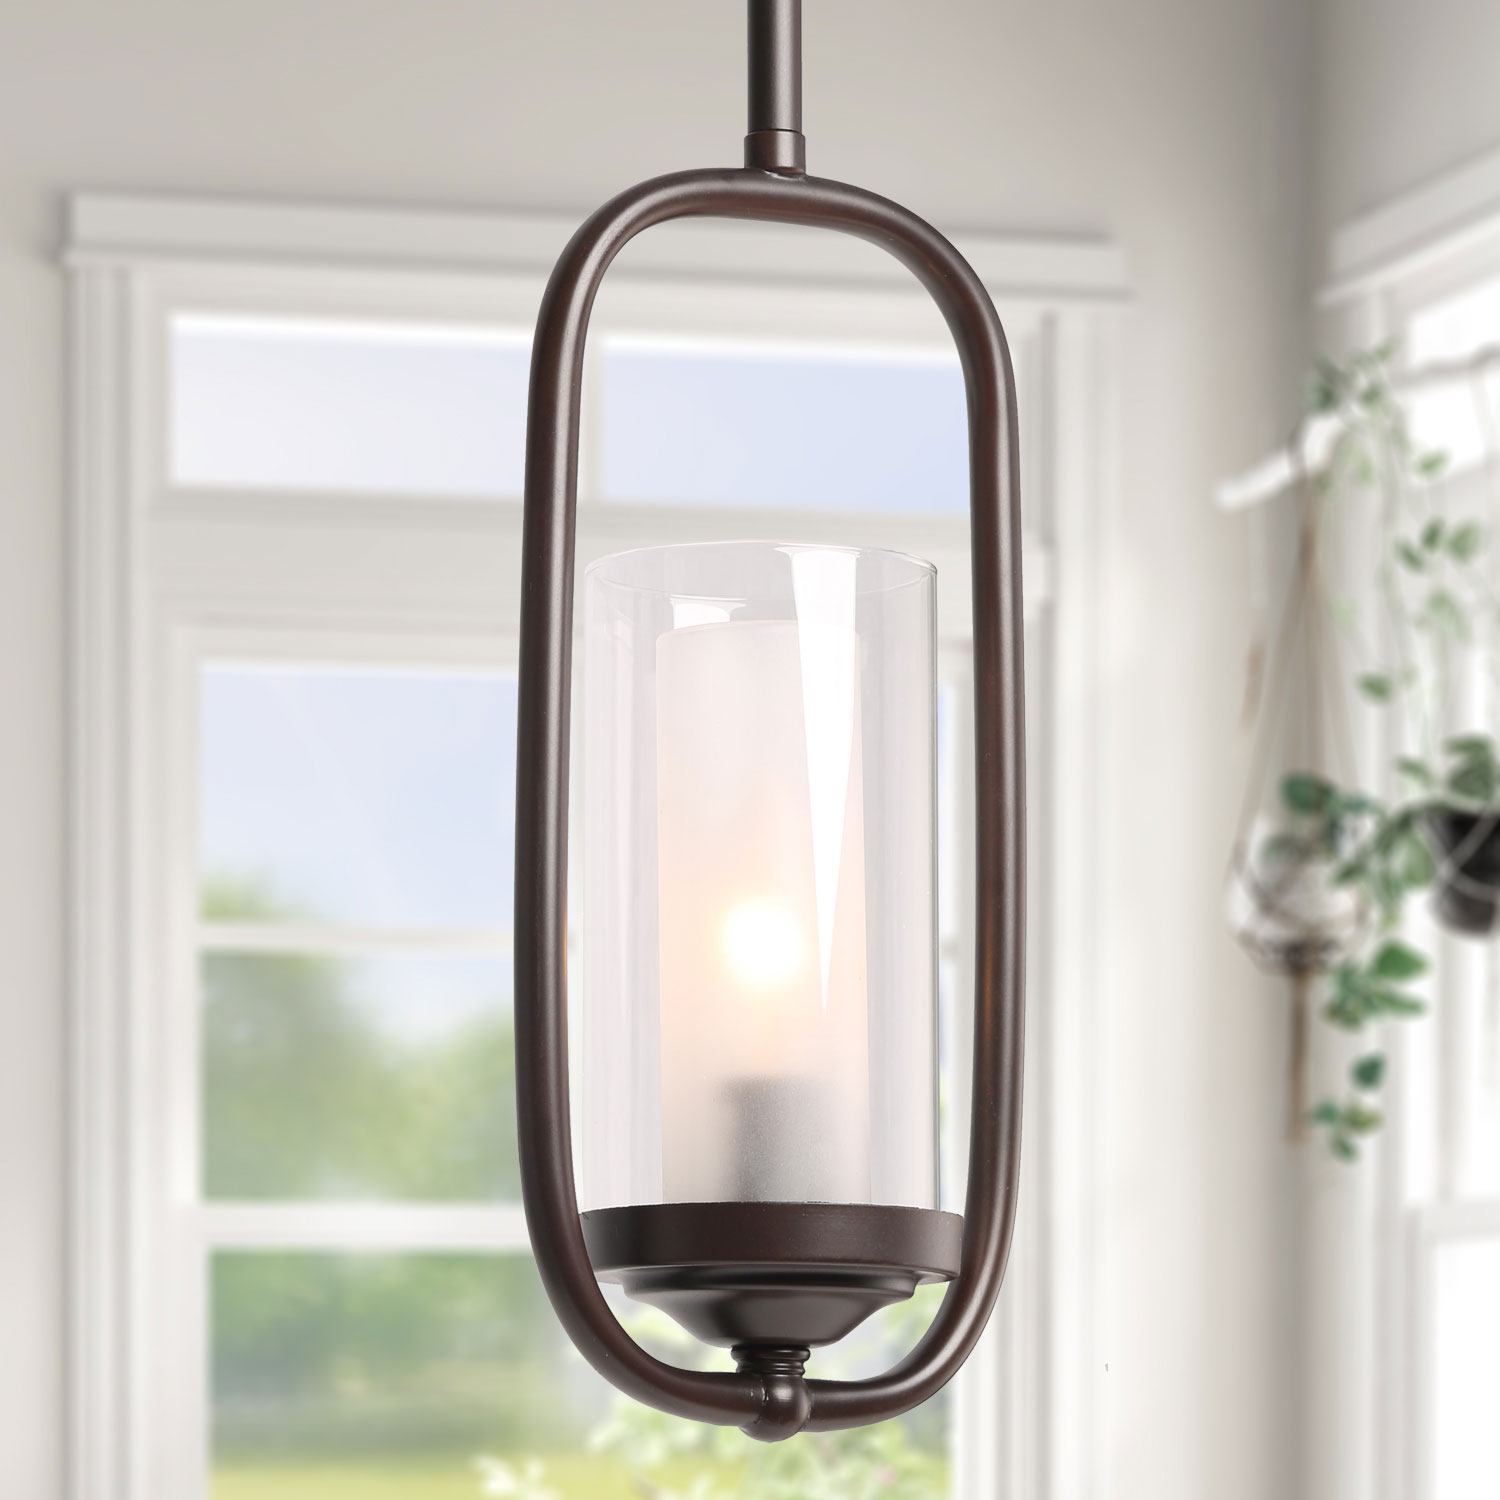 Clearance Pendant Lighting For Kitchen Island Glass Shade Modern Farmhouse Hanging Ceiling Lamp Brown Finished Walmart Com Walmart Com